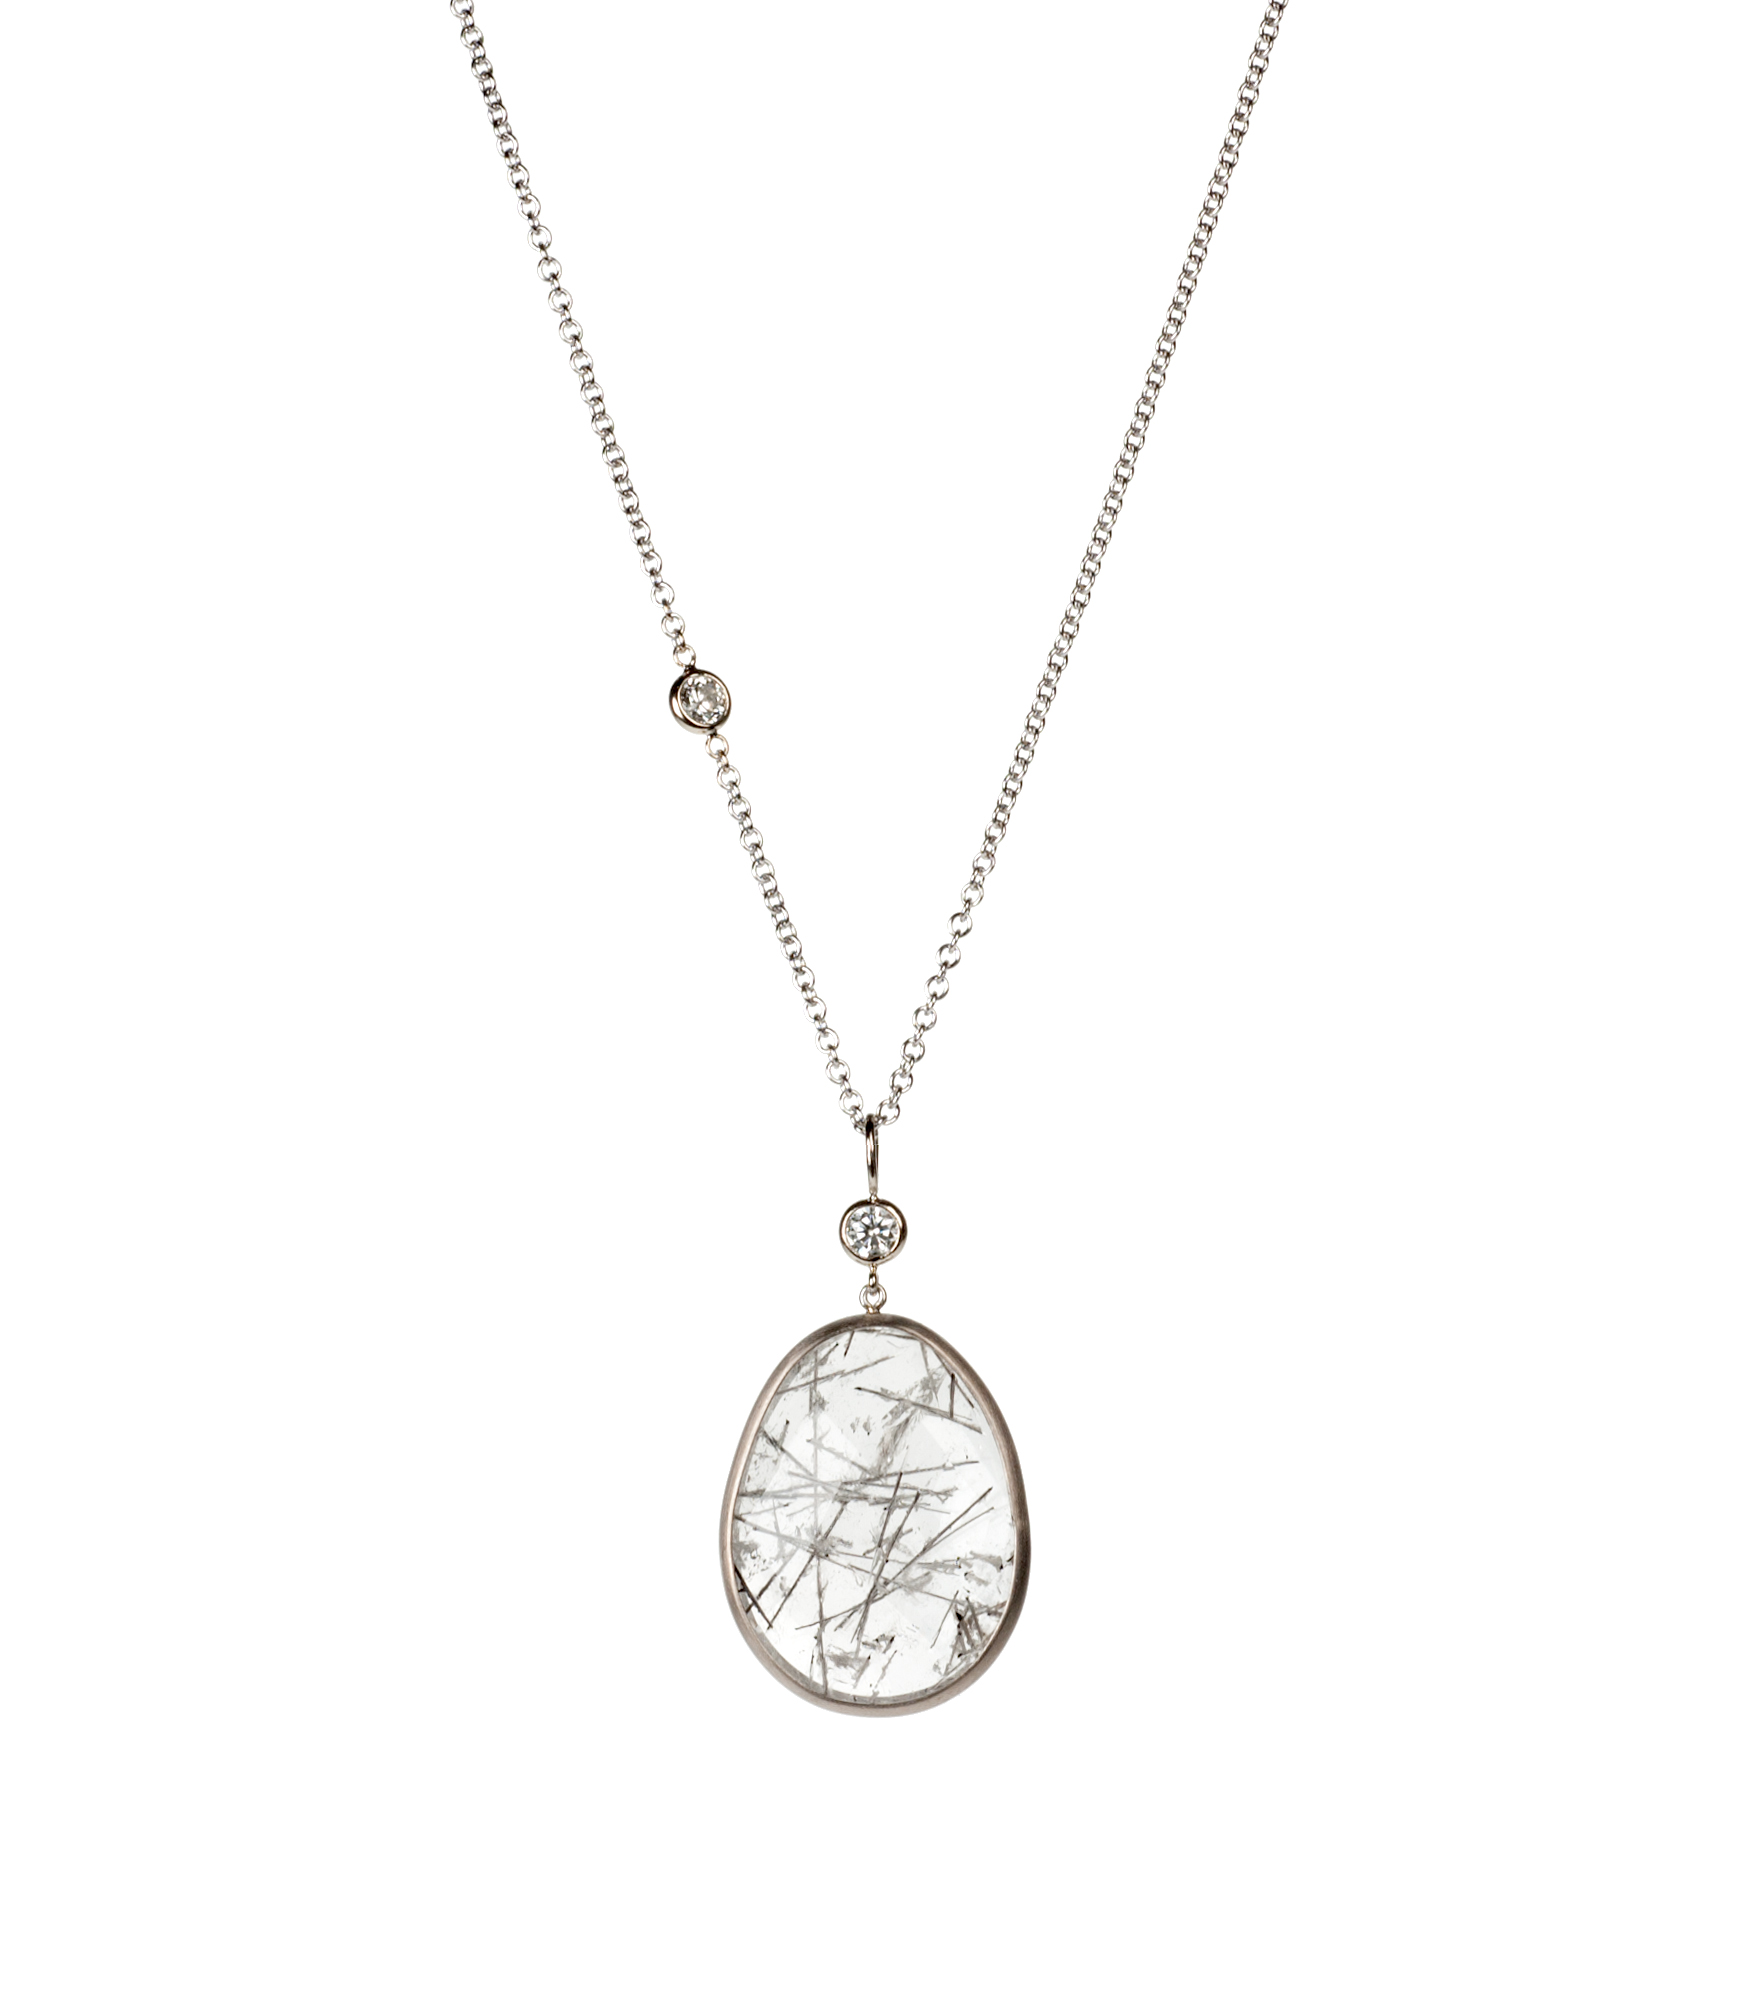 Tourmalated Quartz and diamond necklace in 18-karat white gold